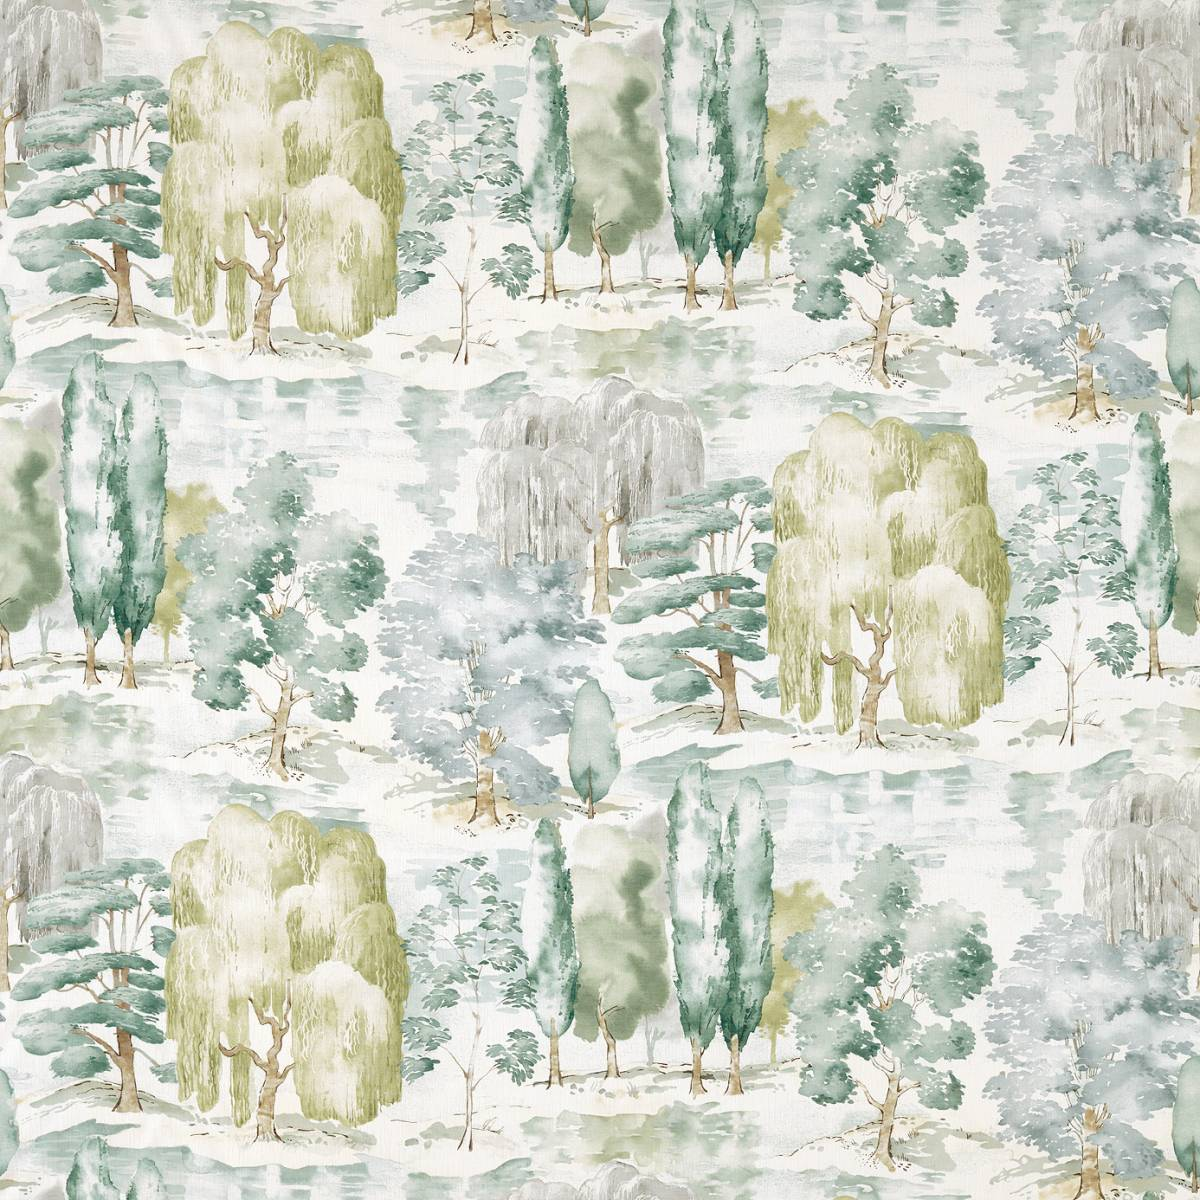 Sanderson Waterperry Prints & Embroideries Fabrics Waterperry Fabric - Mint - 226266. Loading zoom